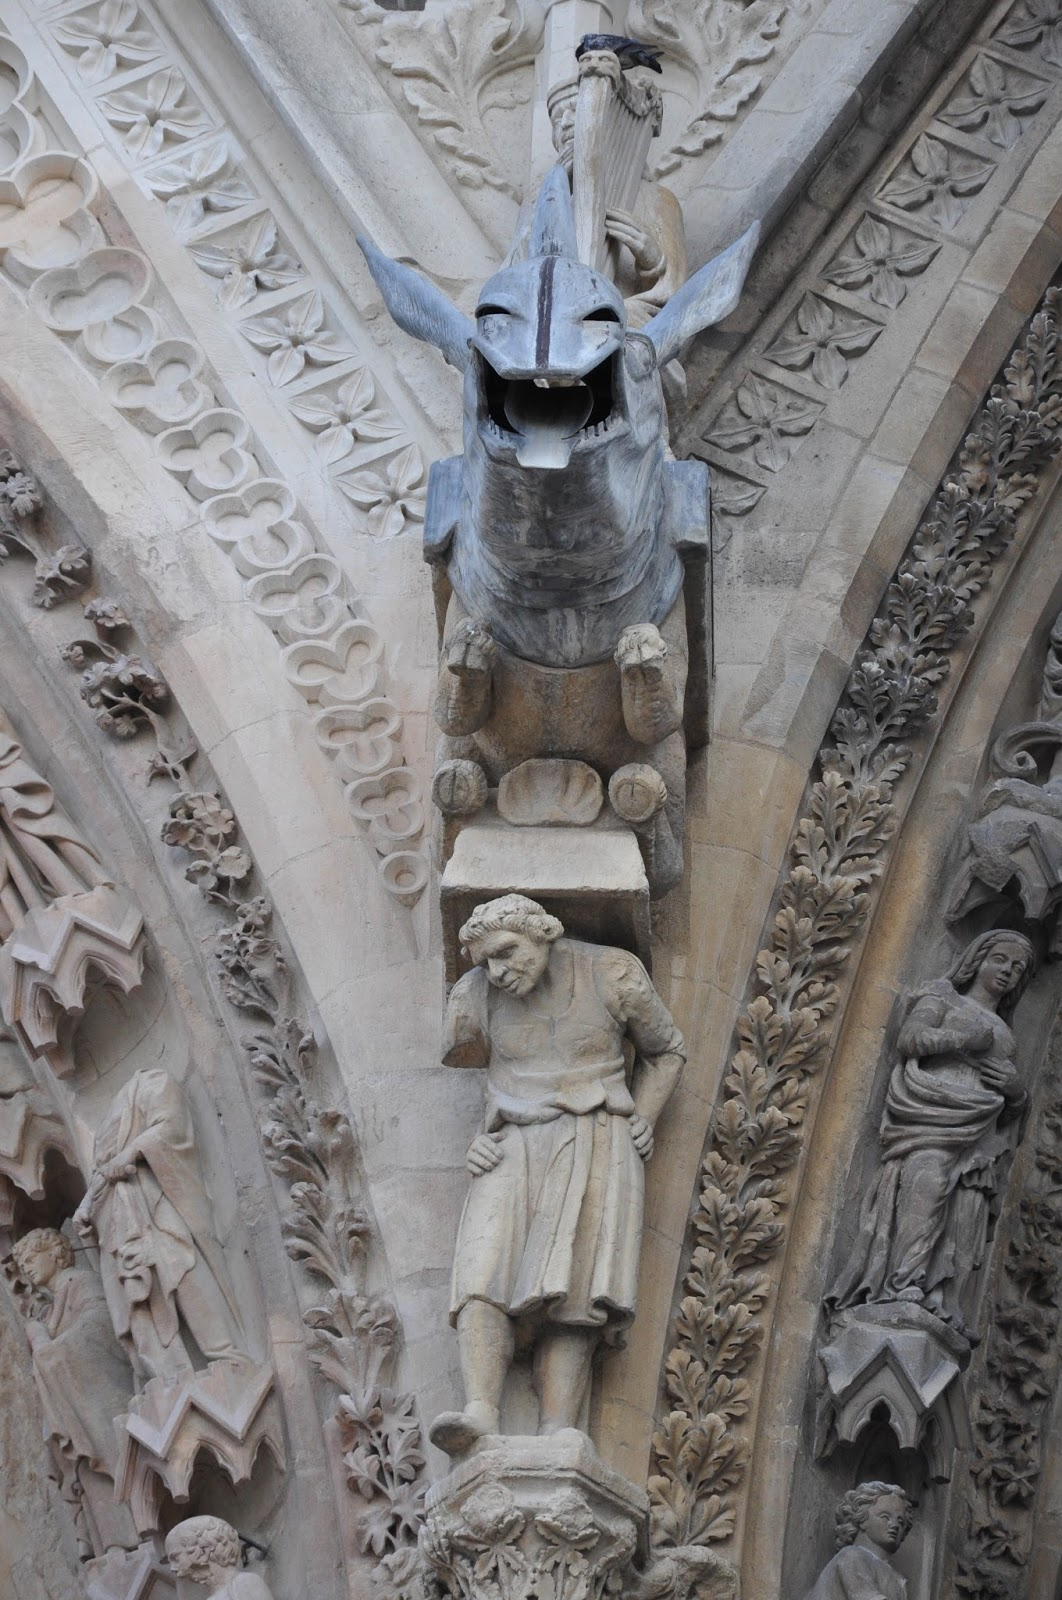 Dragon-shaped water spout, Reims Cathedral, Reims, France